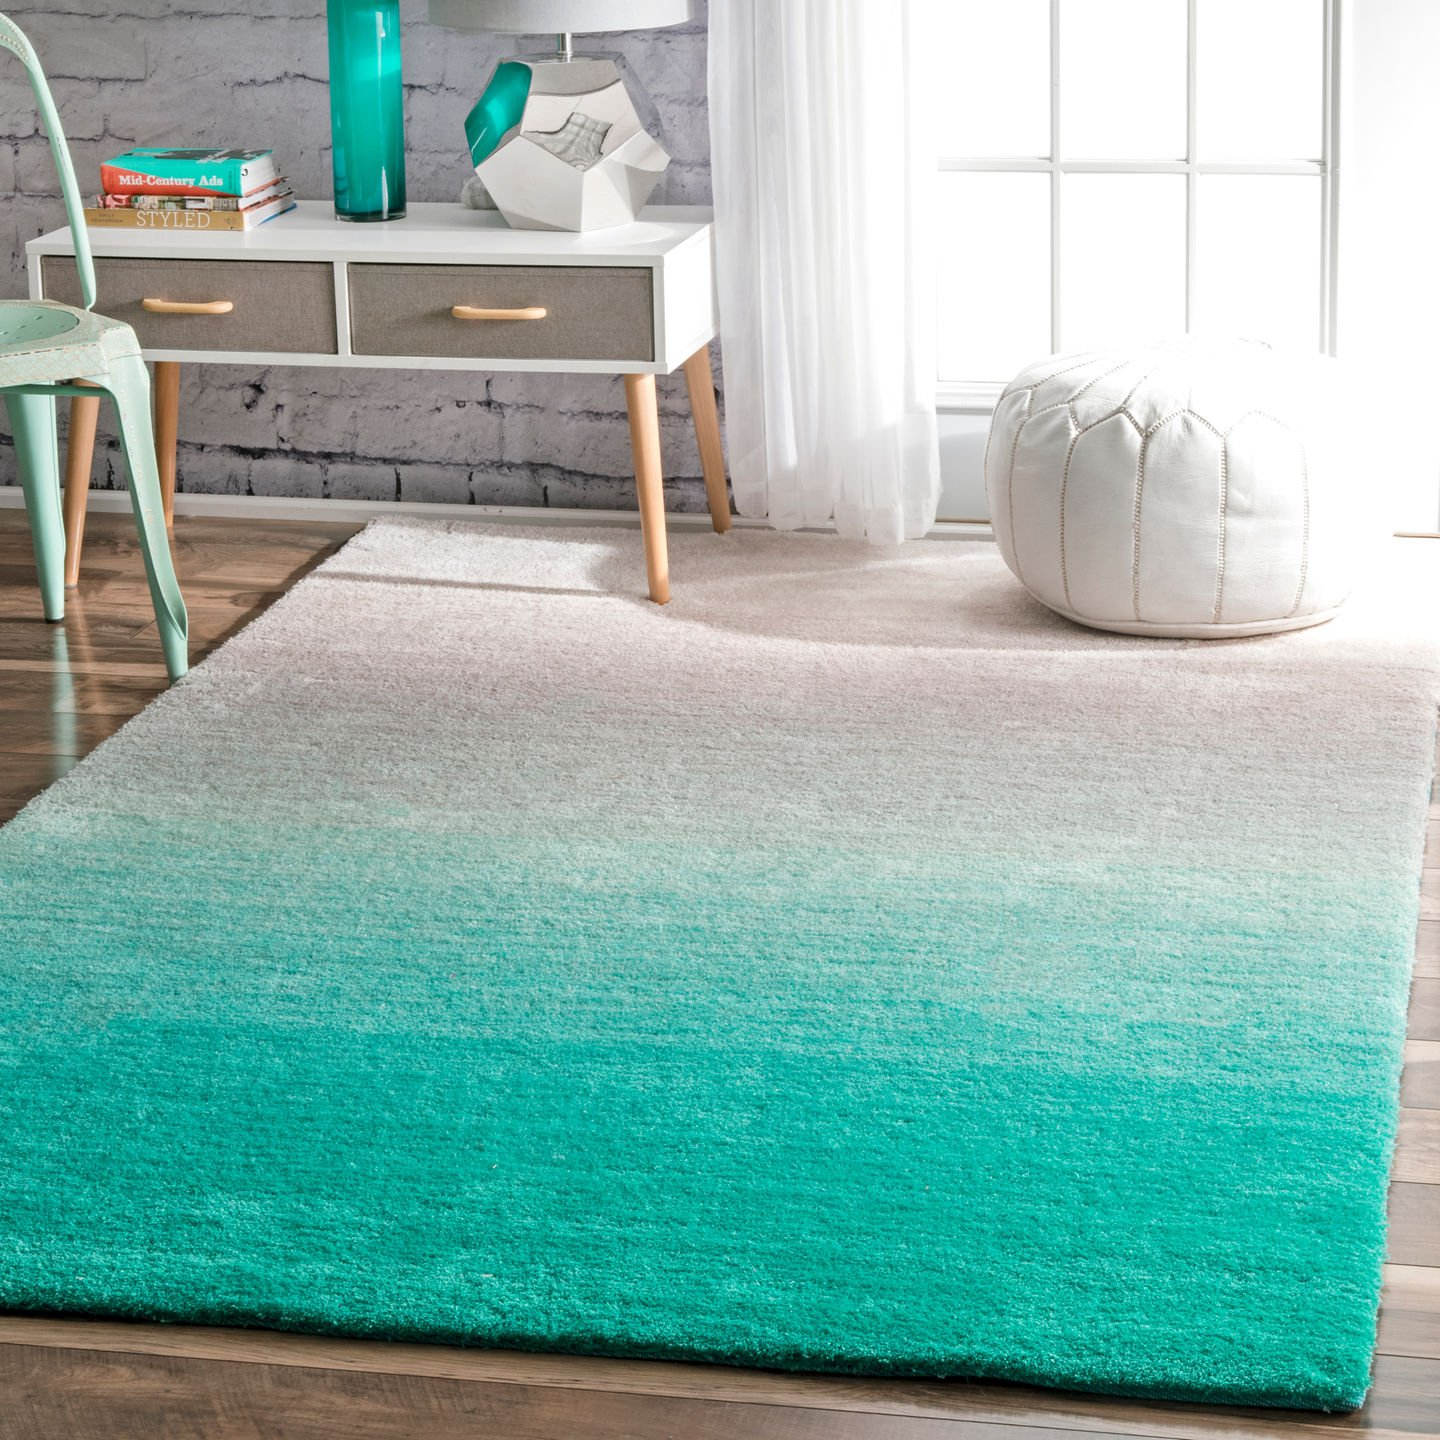 nuLOOM Ariel Ombre Shag Rug, 5 x 8 , Turquoise